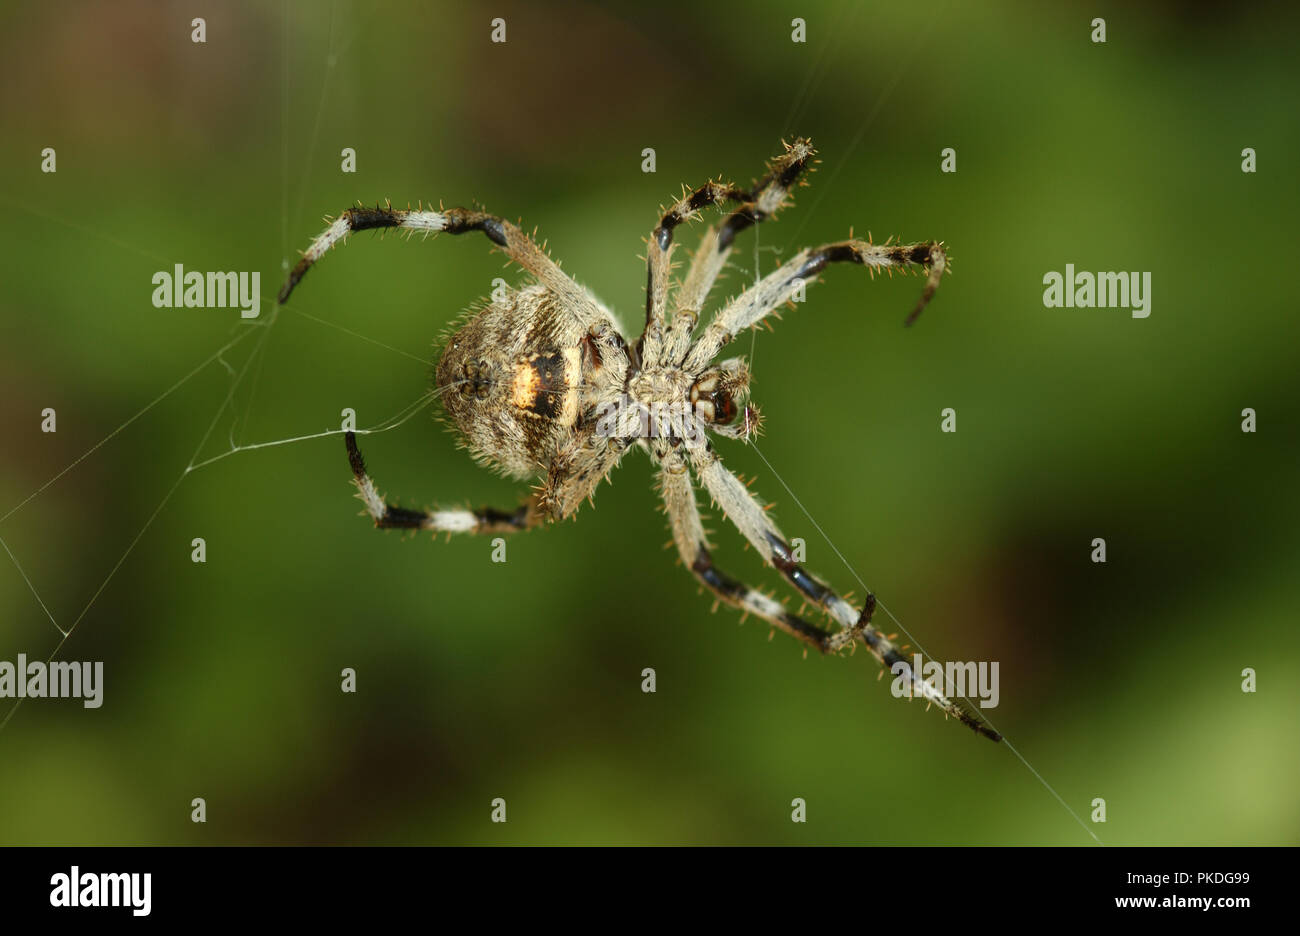 Common garden spider spinning its web, Western Australia Stock Photo